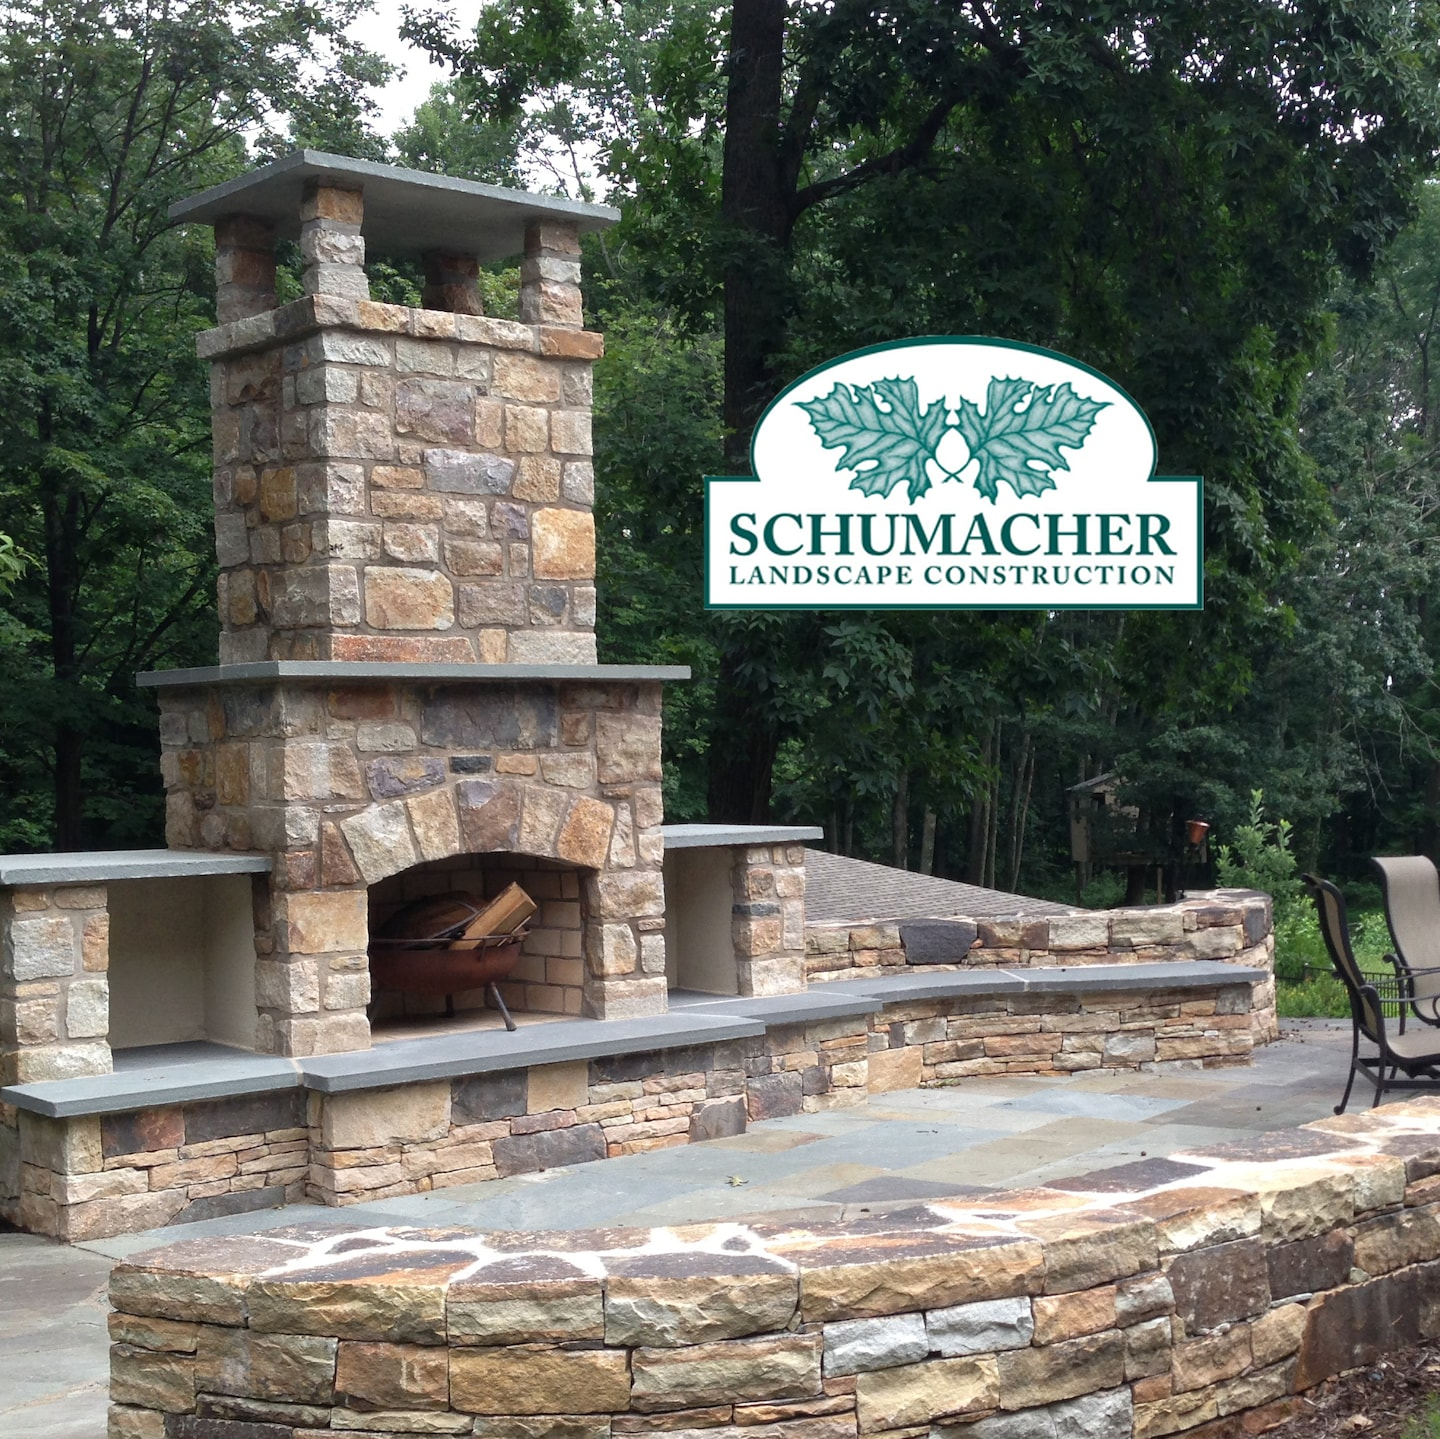 Schumacher Landscape Construction